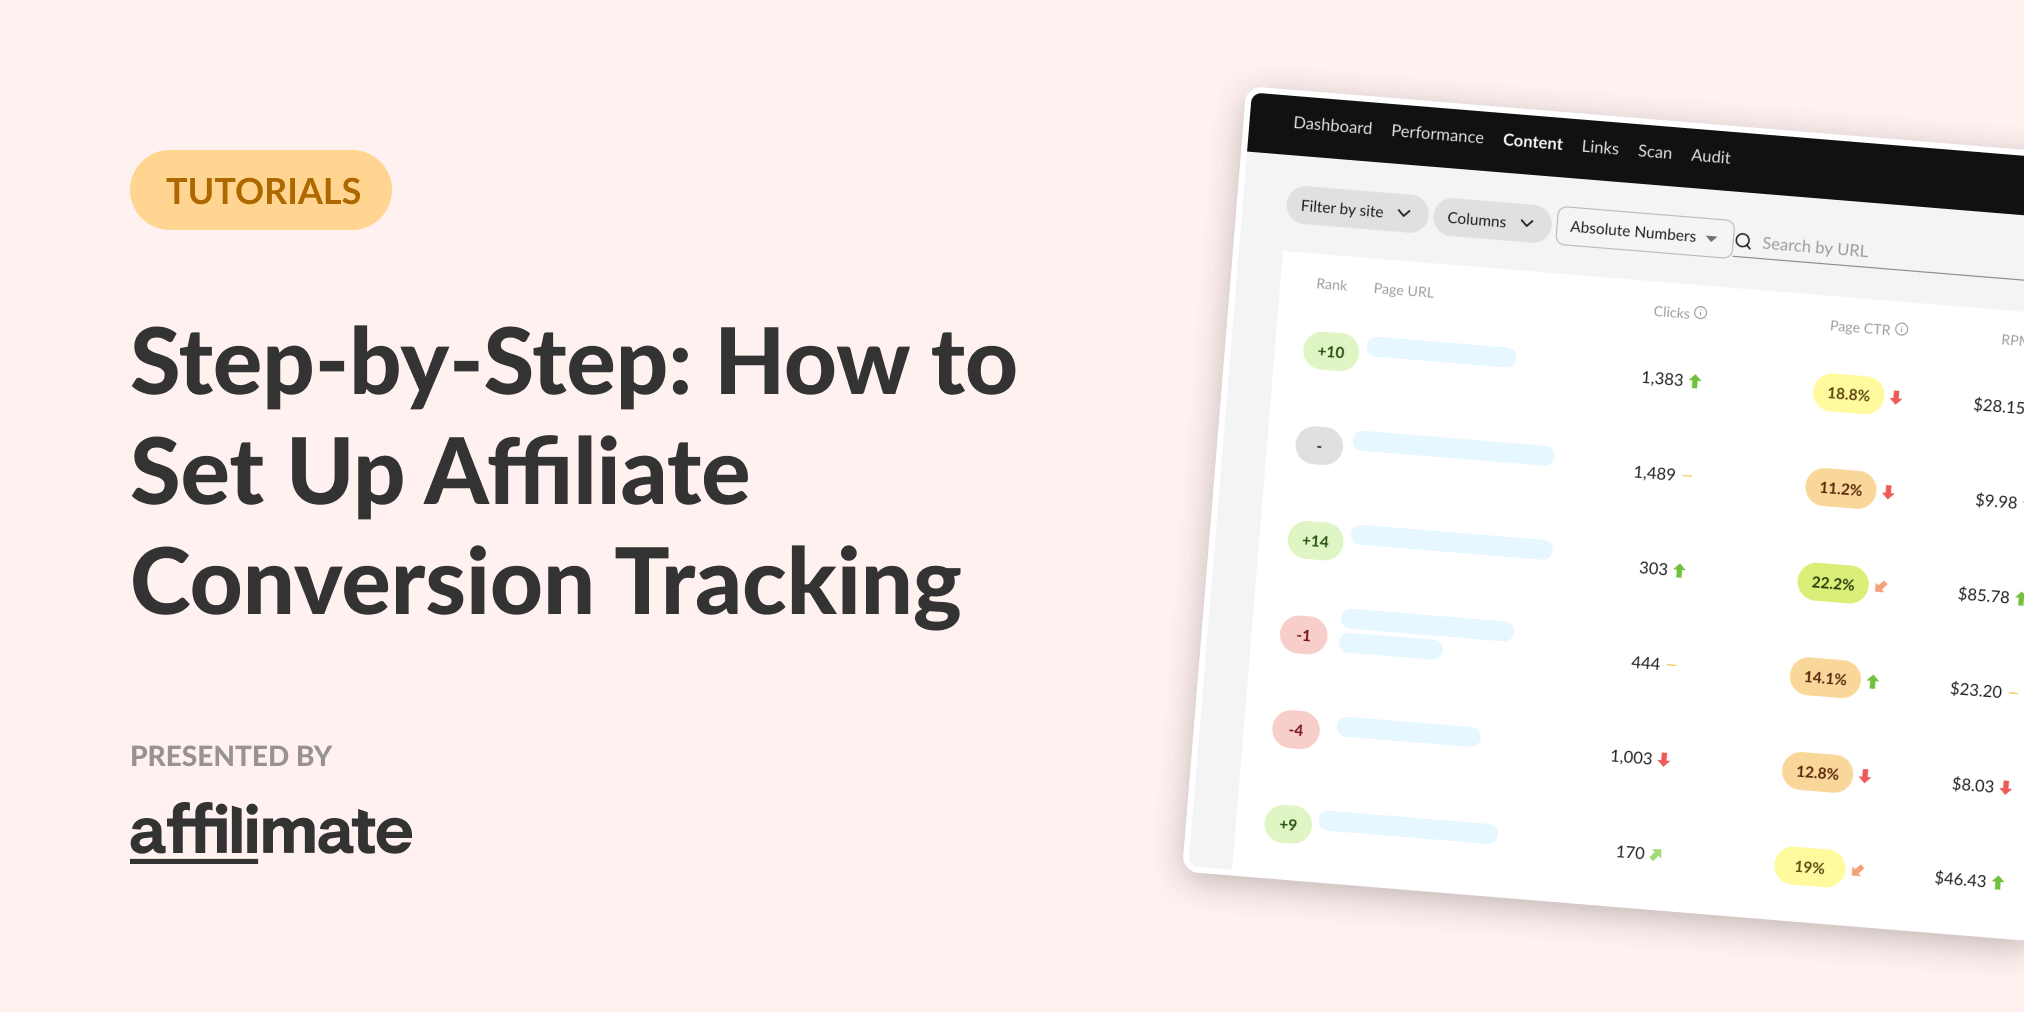 Step-by-Step: How to Set Up Affiliate Conversion Tracking, Fast